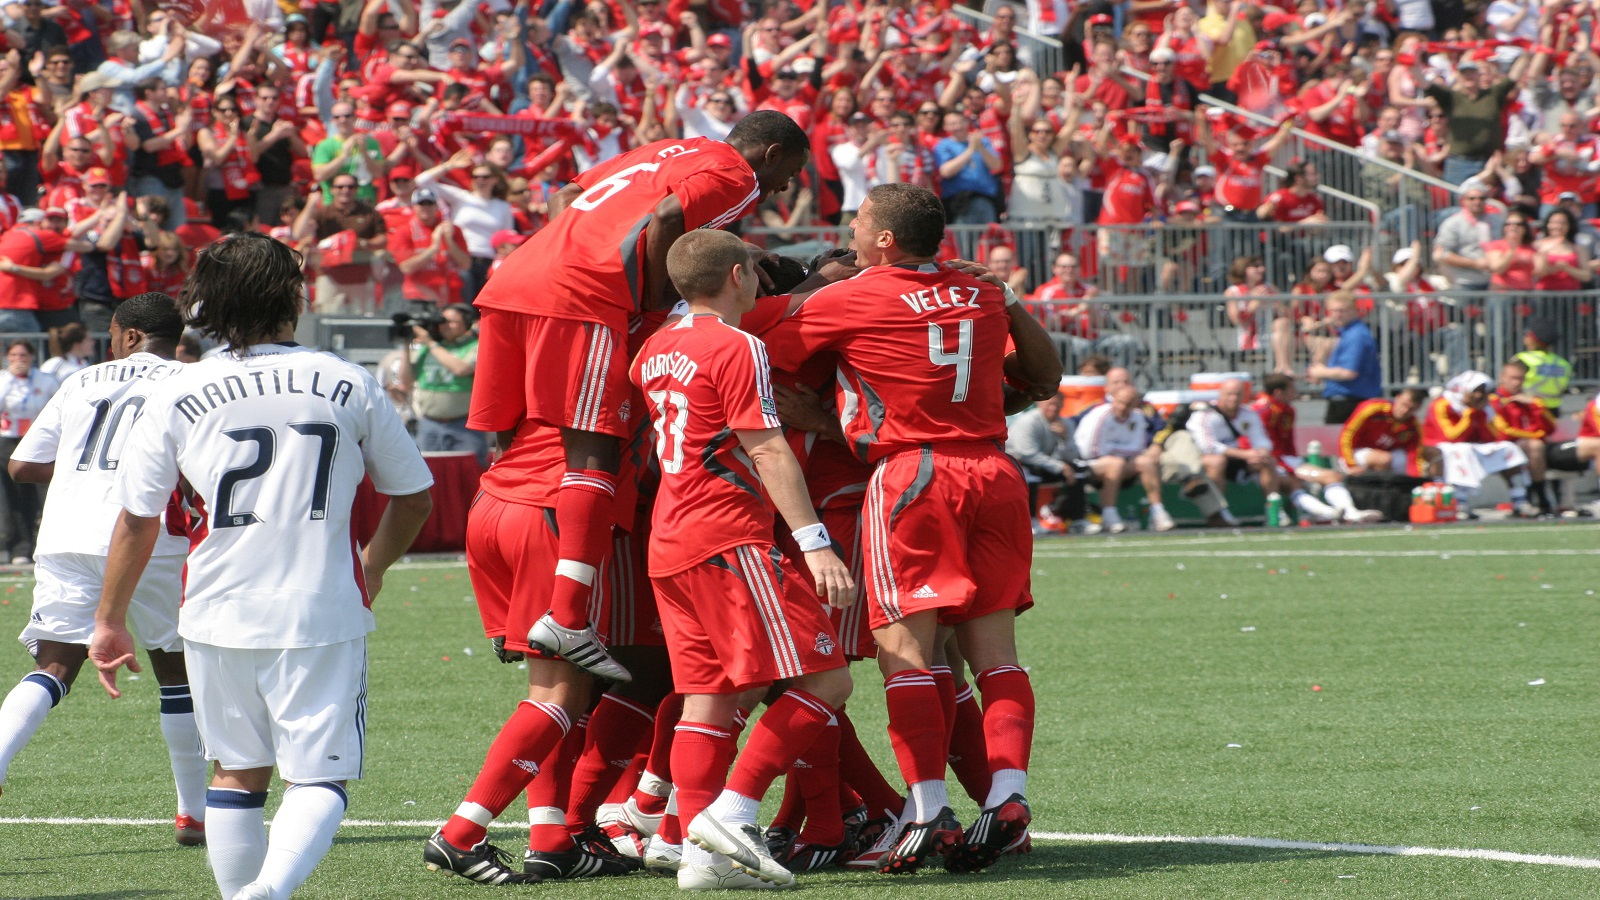 Things to do in Toronto - BMO Field